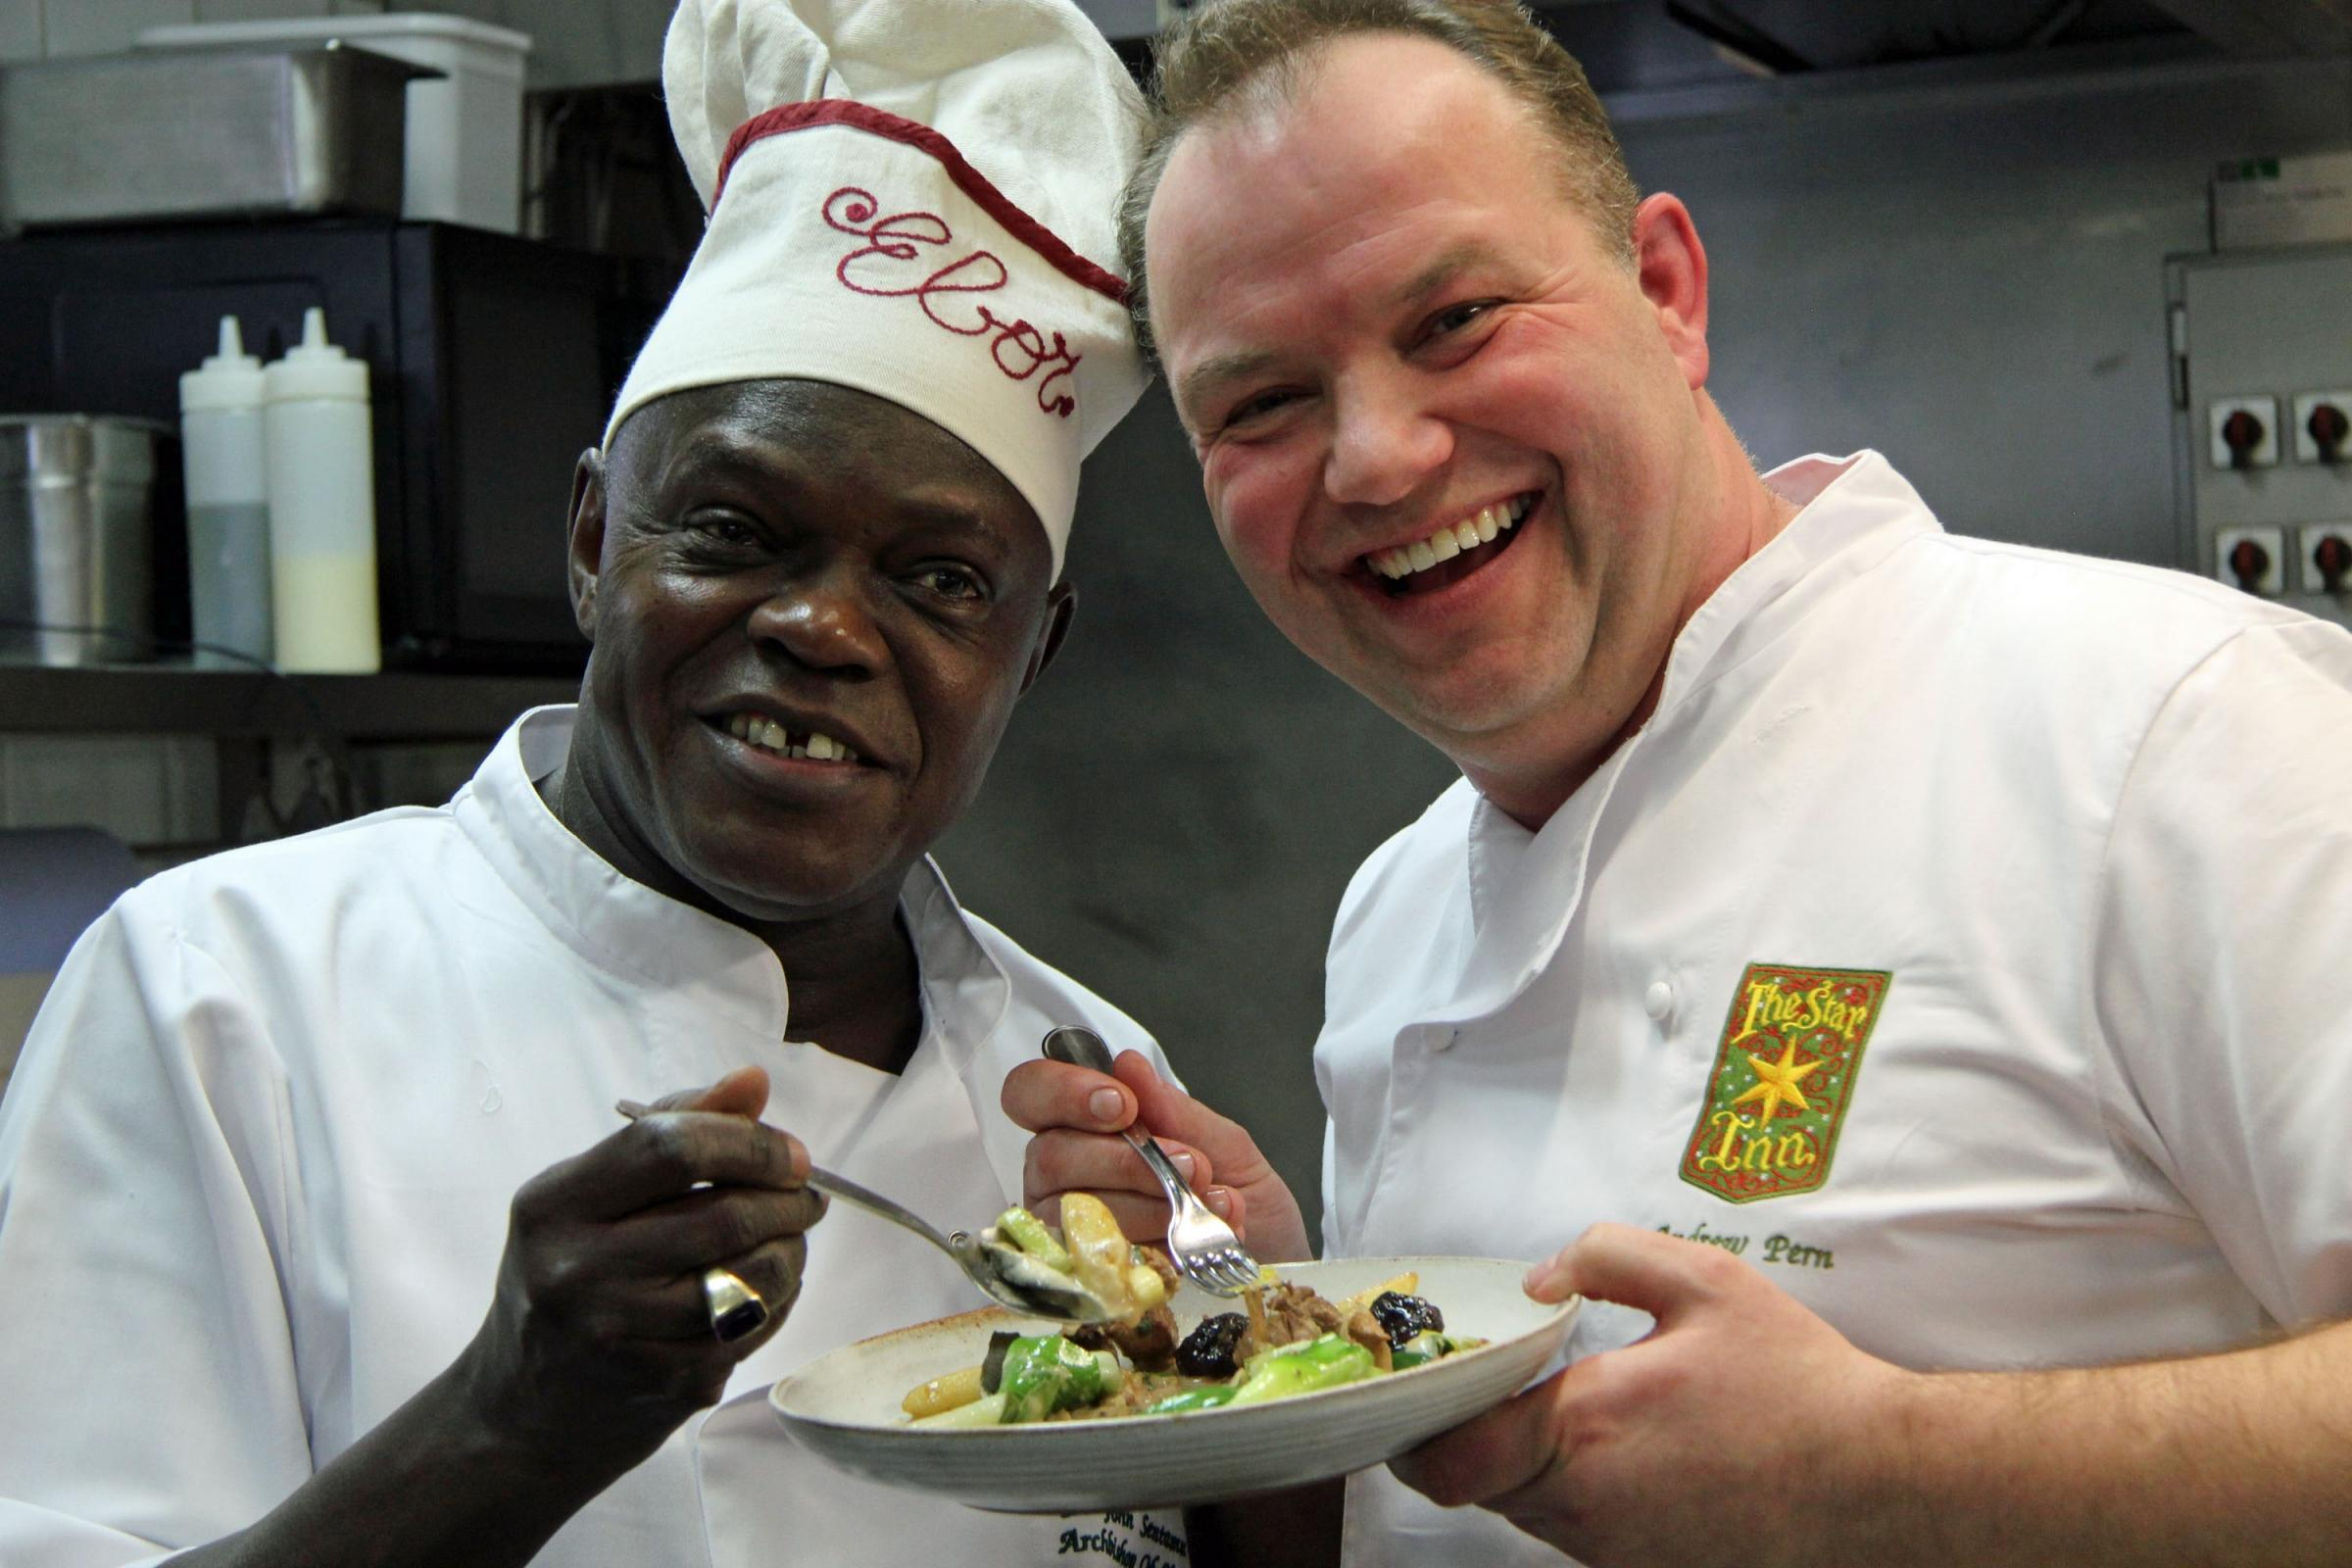 Archbishop Sentamu and Andrew Pern with a pheasant dish